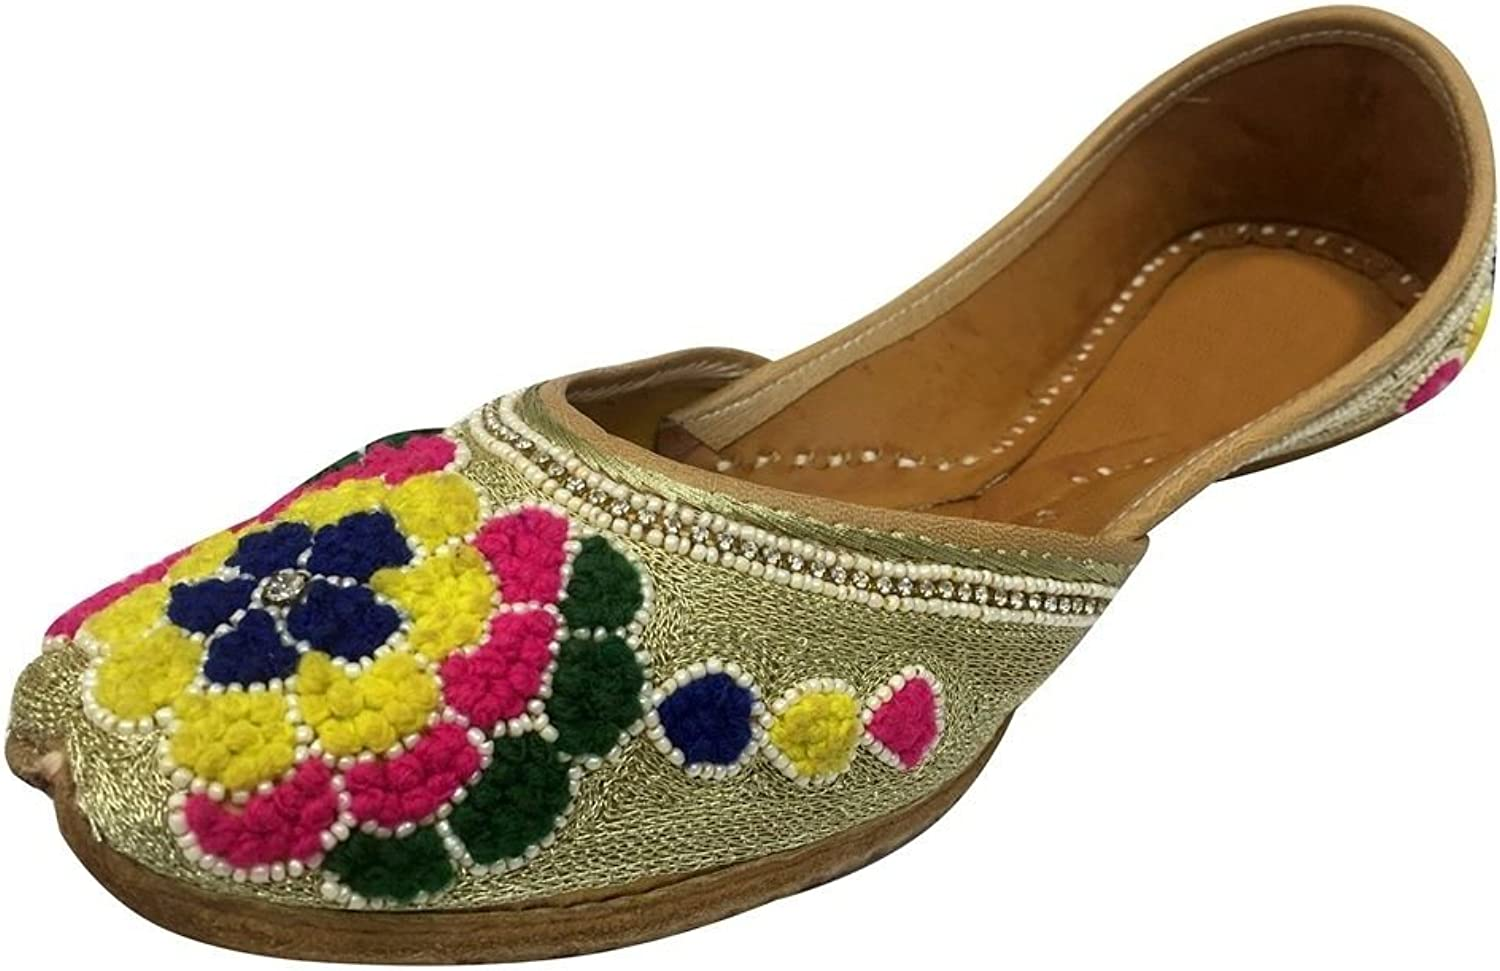 Step n Style Bellies shoes Belly Punjabi Jutti Khussa shoes Mojari shoes Flat shoes